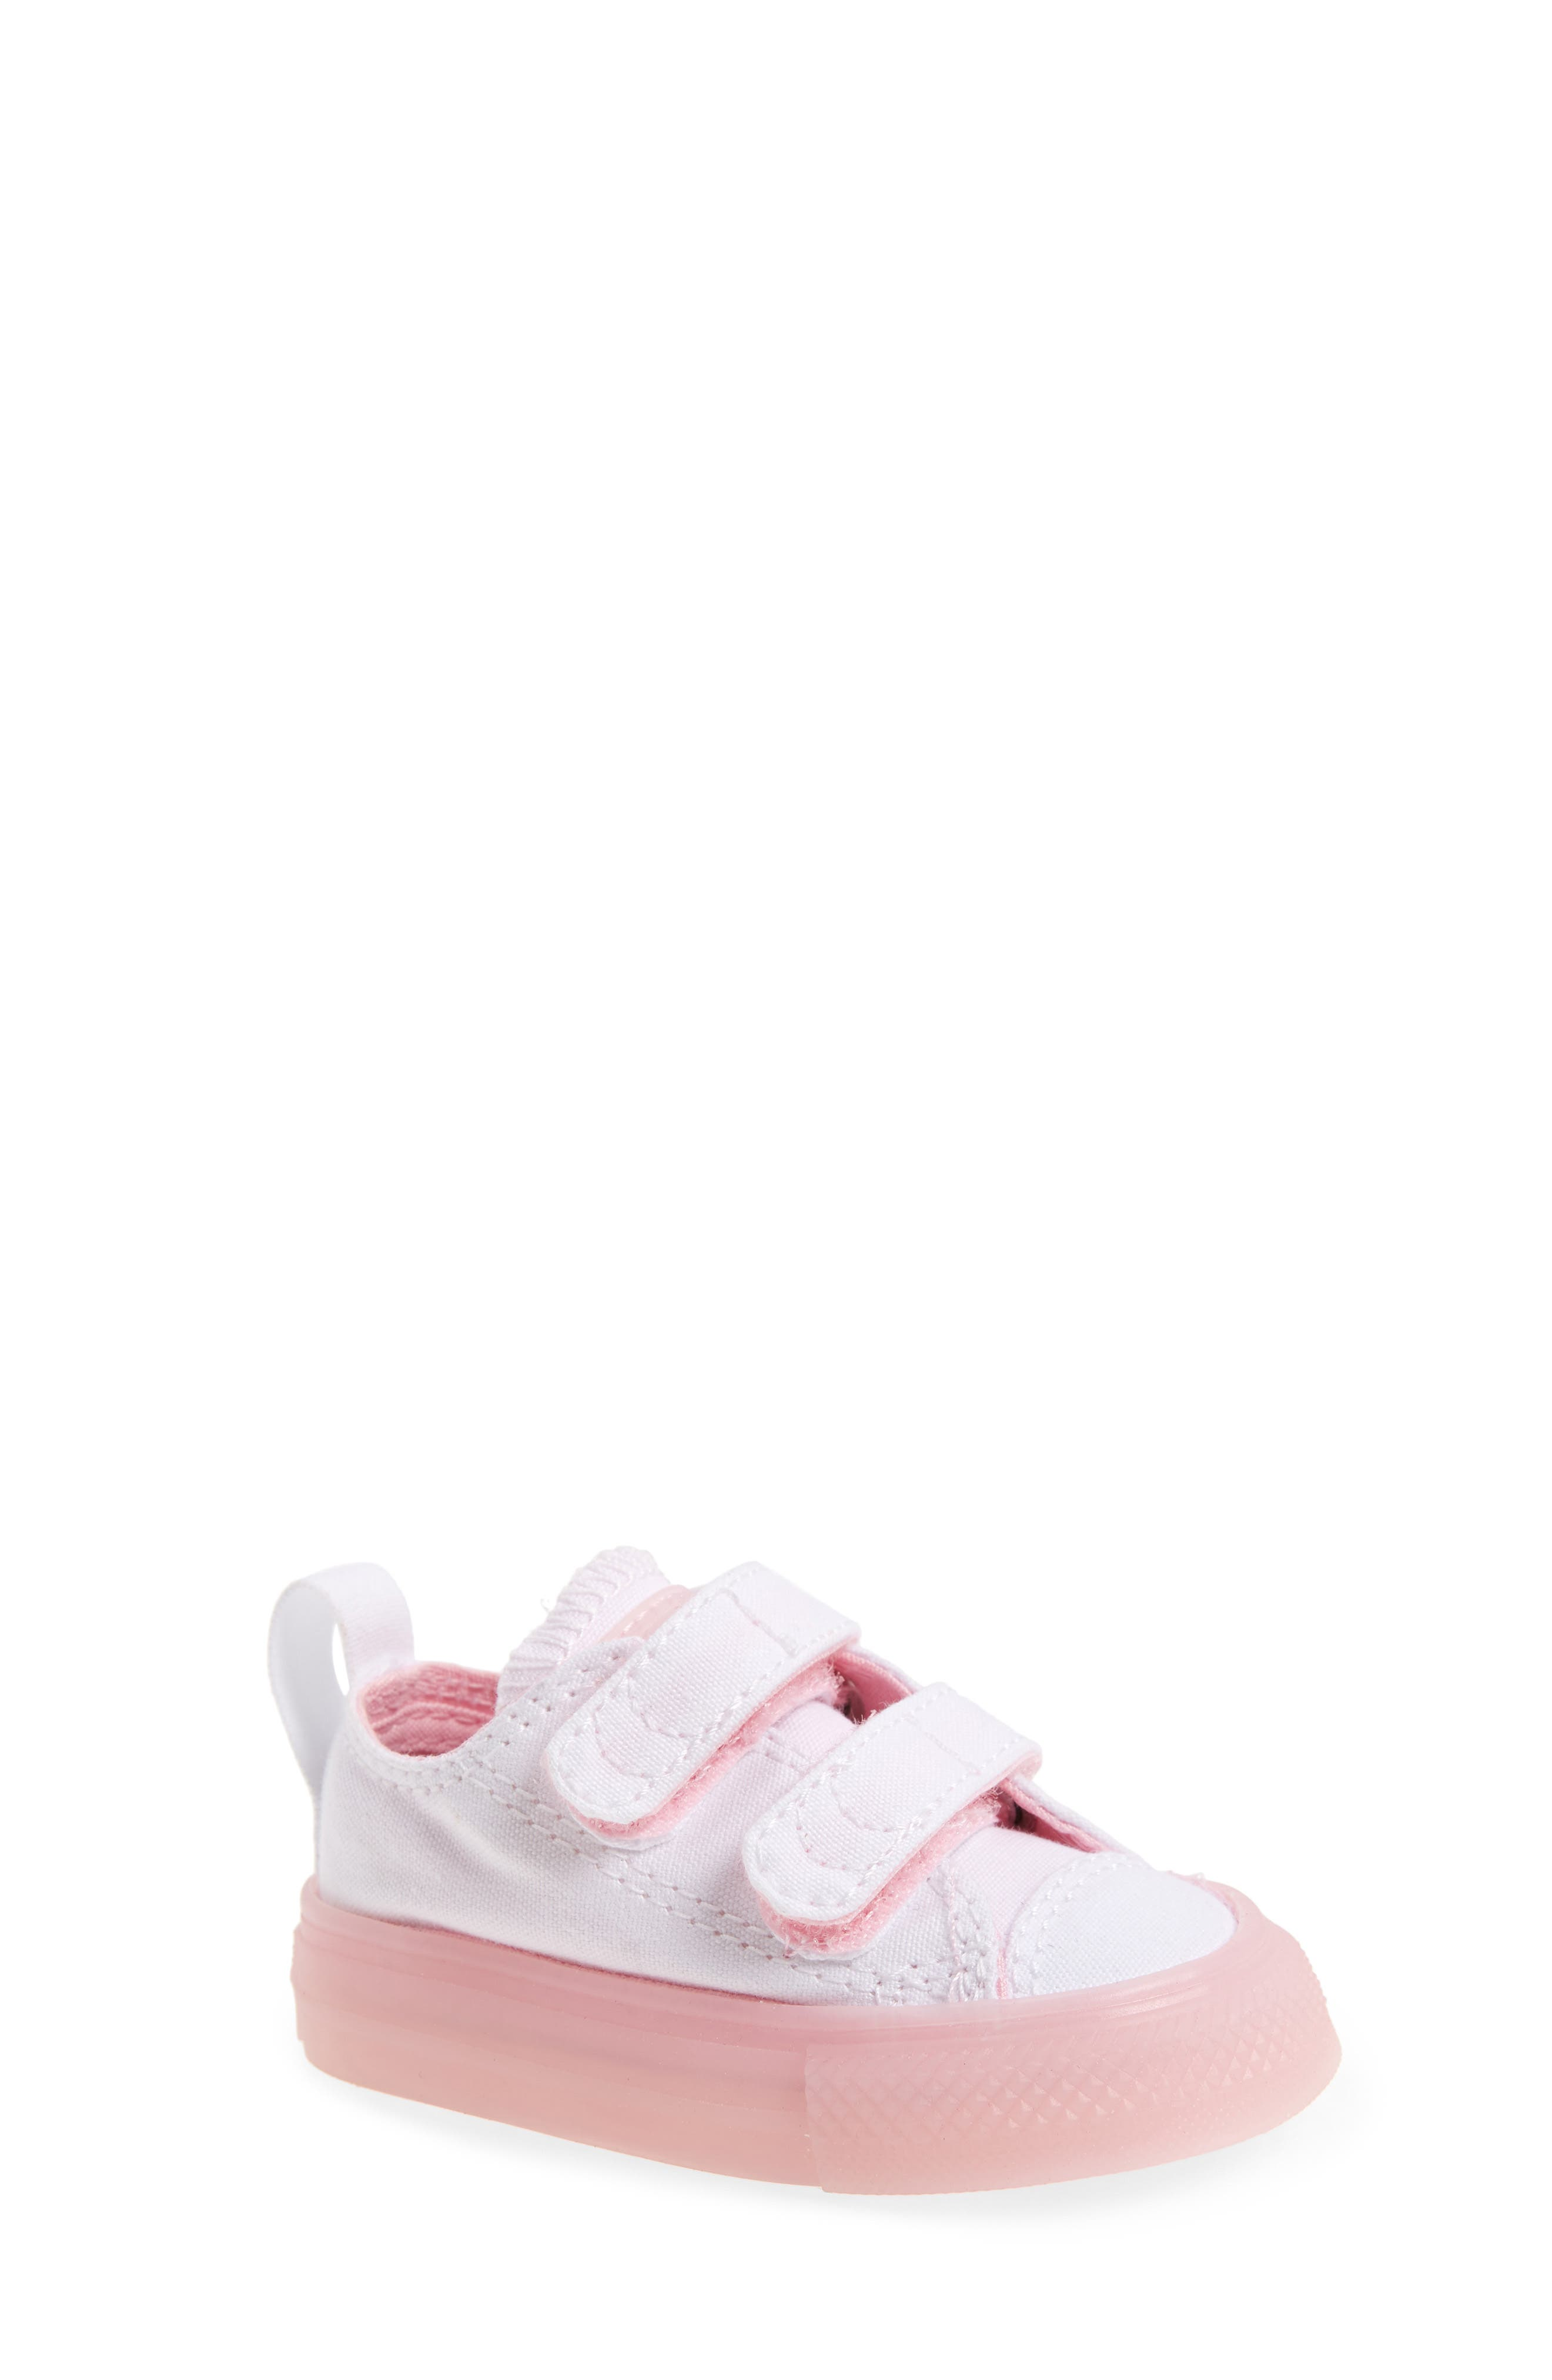 Alternate Image 1 Selected - Converse Chuck Taylor® All Star® Jelly Sneaker (Baby, Walker & Toddler)